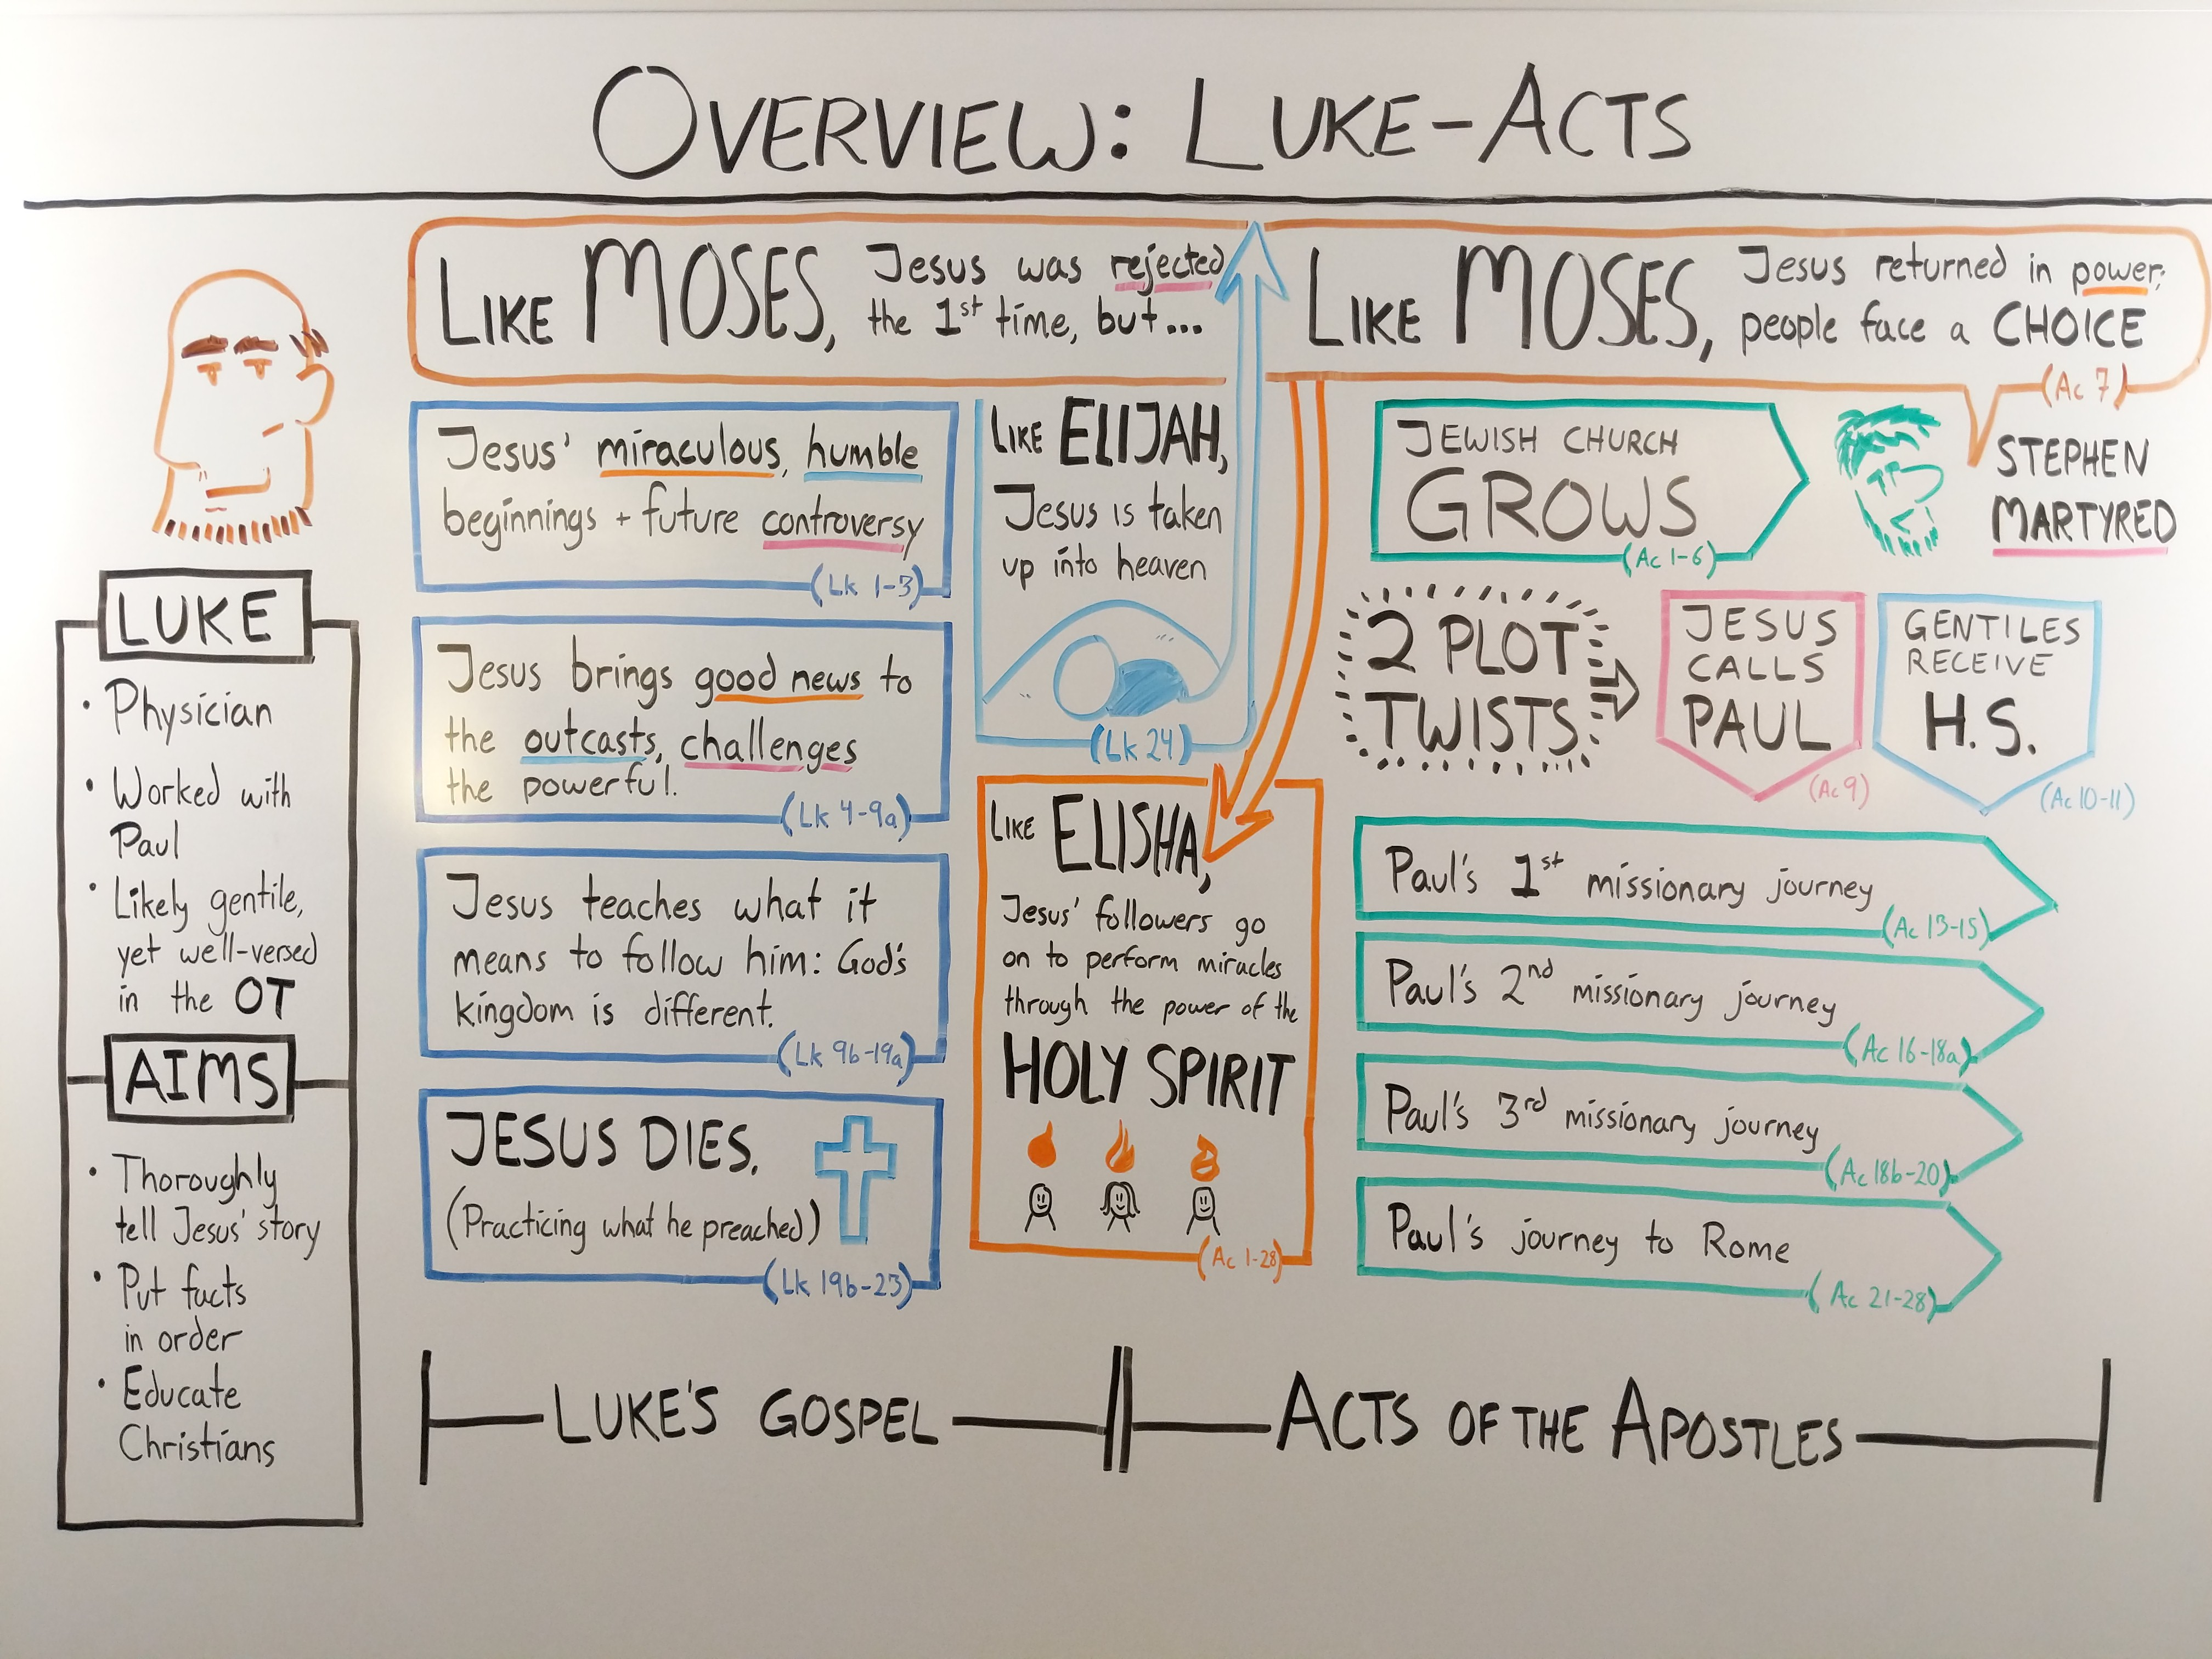 Whiteboard outline of the Gospel of Luke and Acts